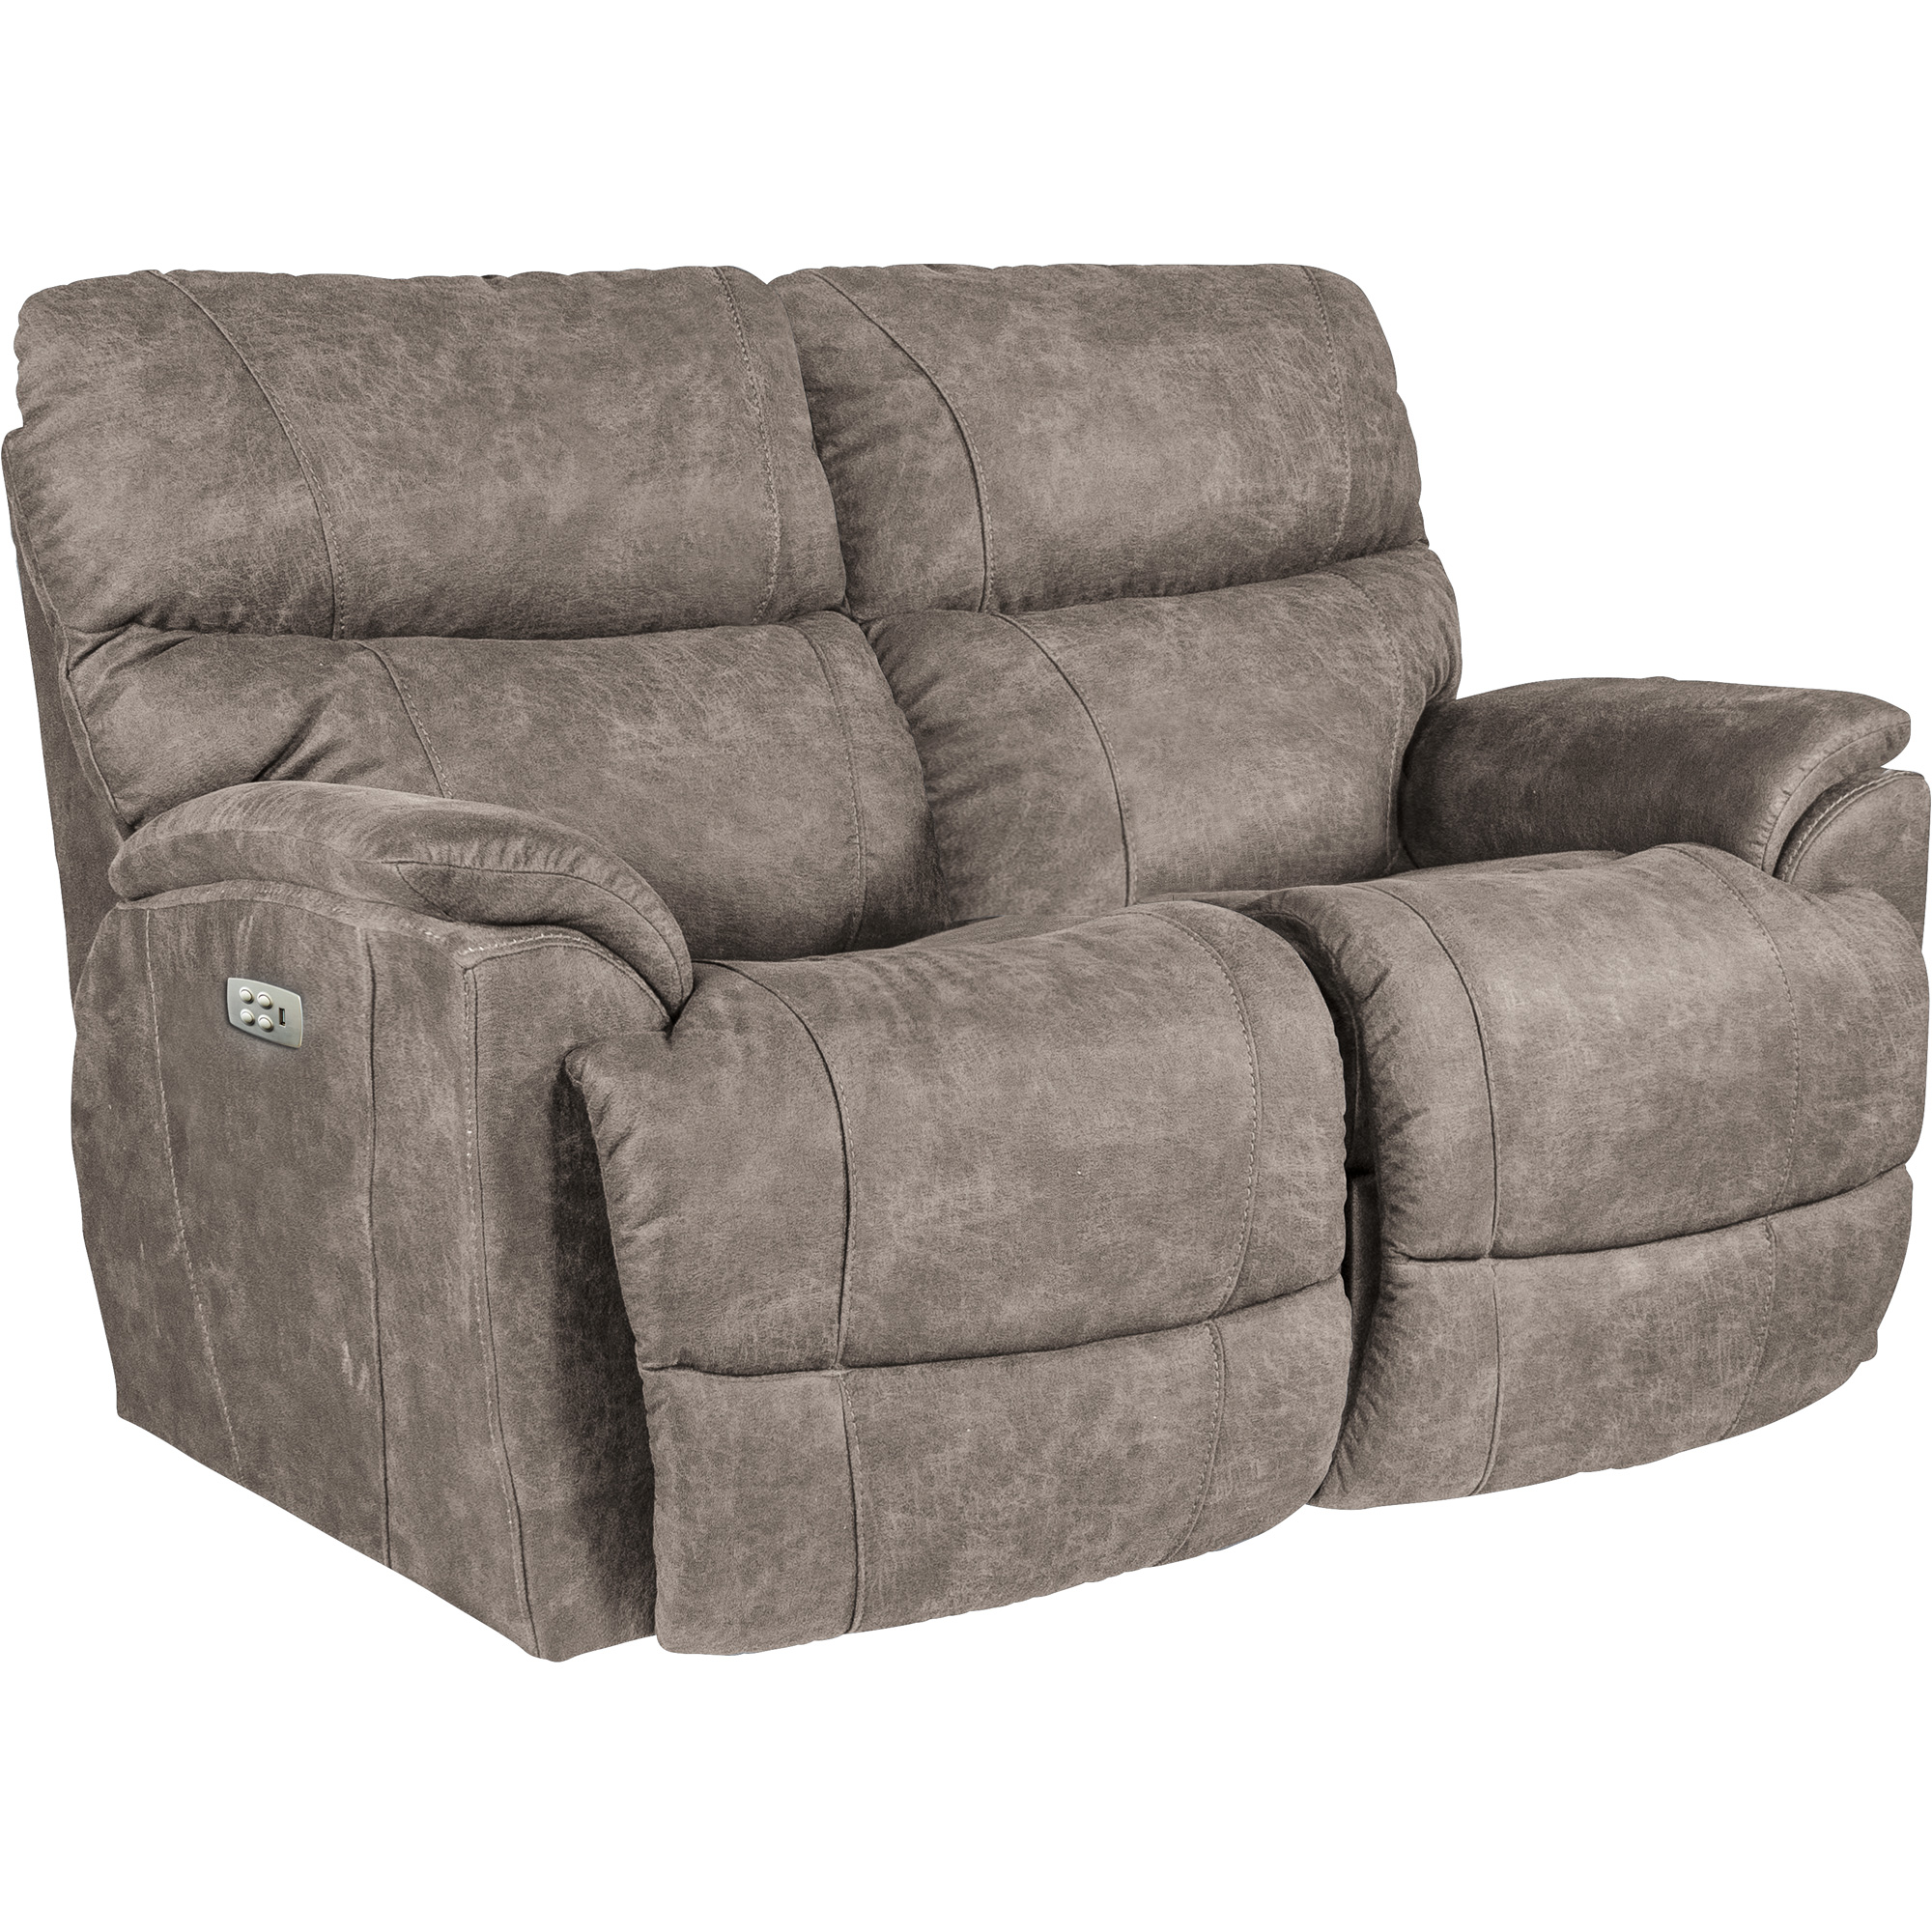 La-Z-Boy | Trouper Sable Power Plus Reclining Loveseat Sofa